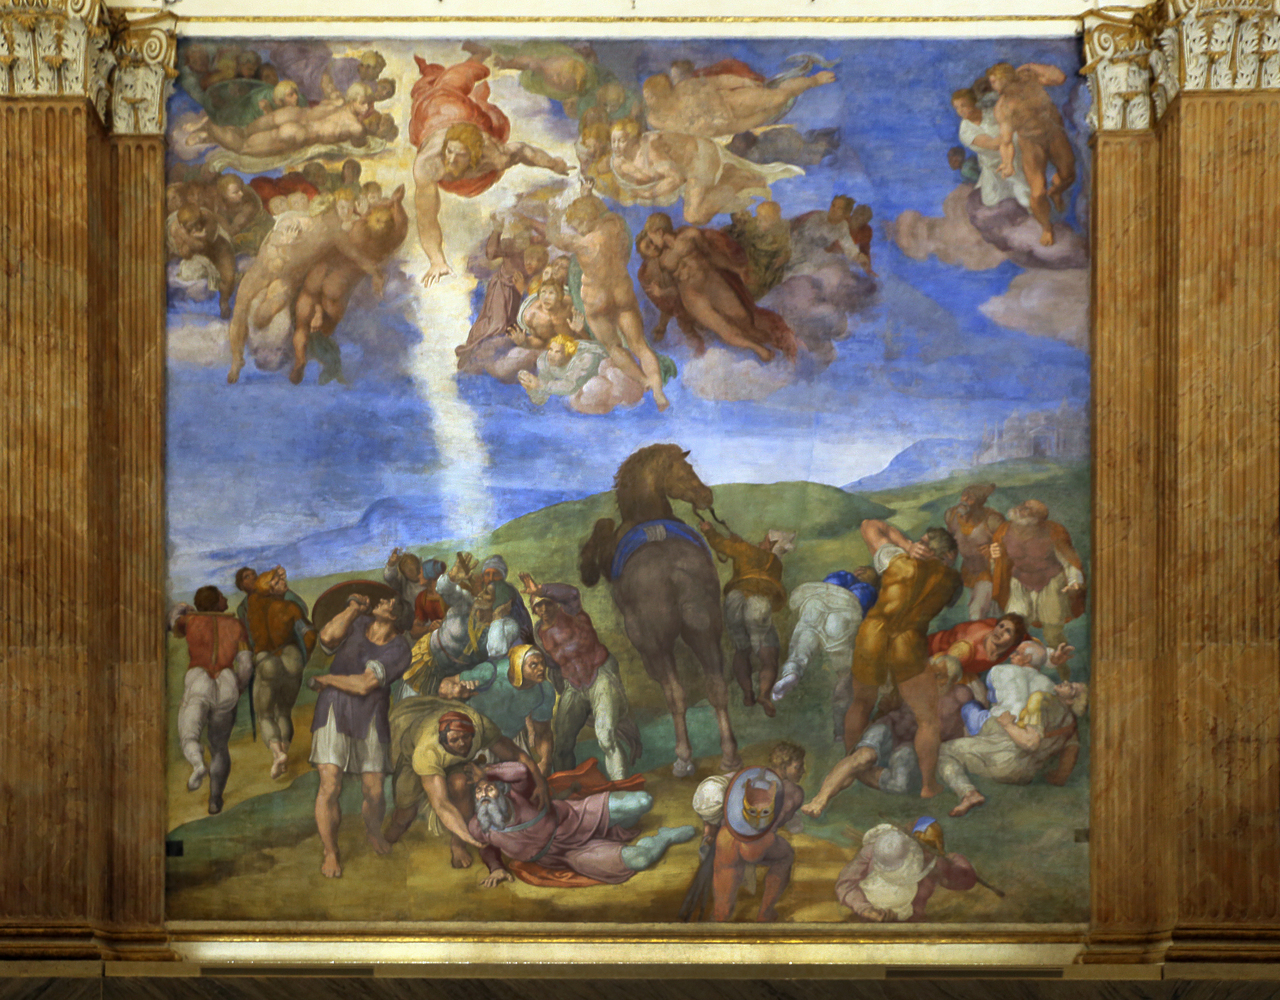 Michelangelo's Conversion of St Paul